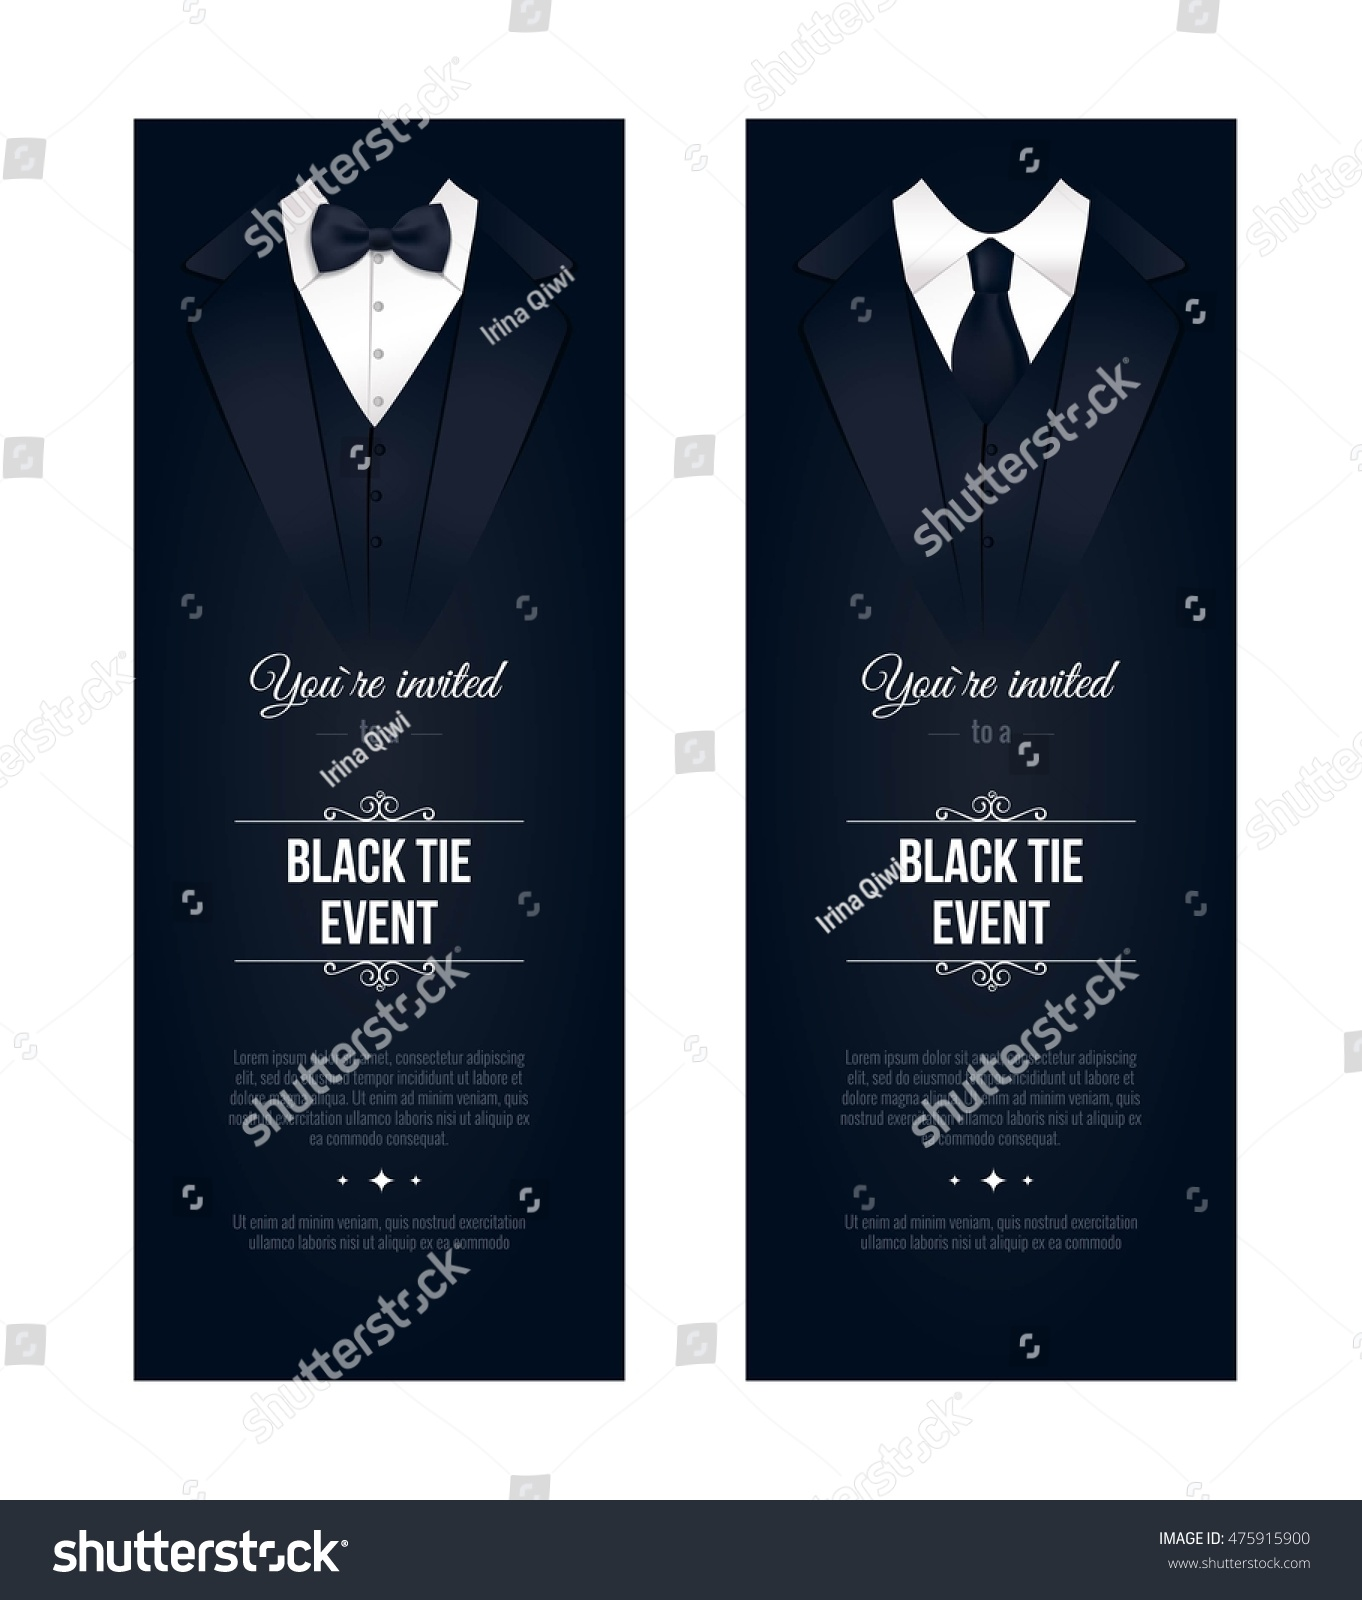 Two vertical Black Tie Event Invitations Businessmen banners Elegant black and white cards Black banners set with businessman suits Vector illustration